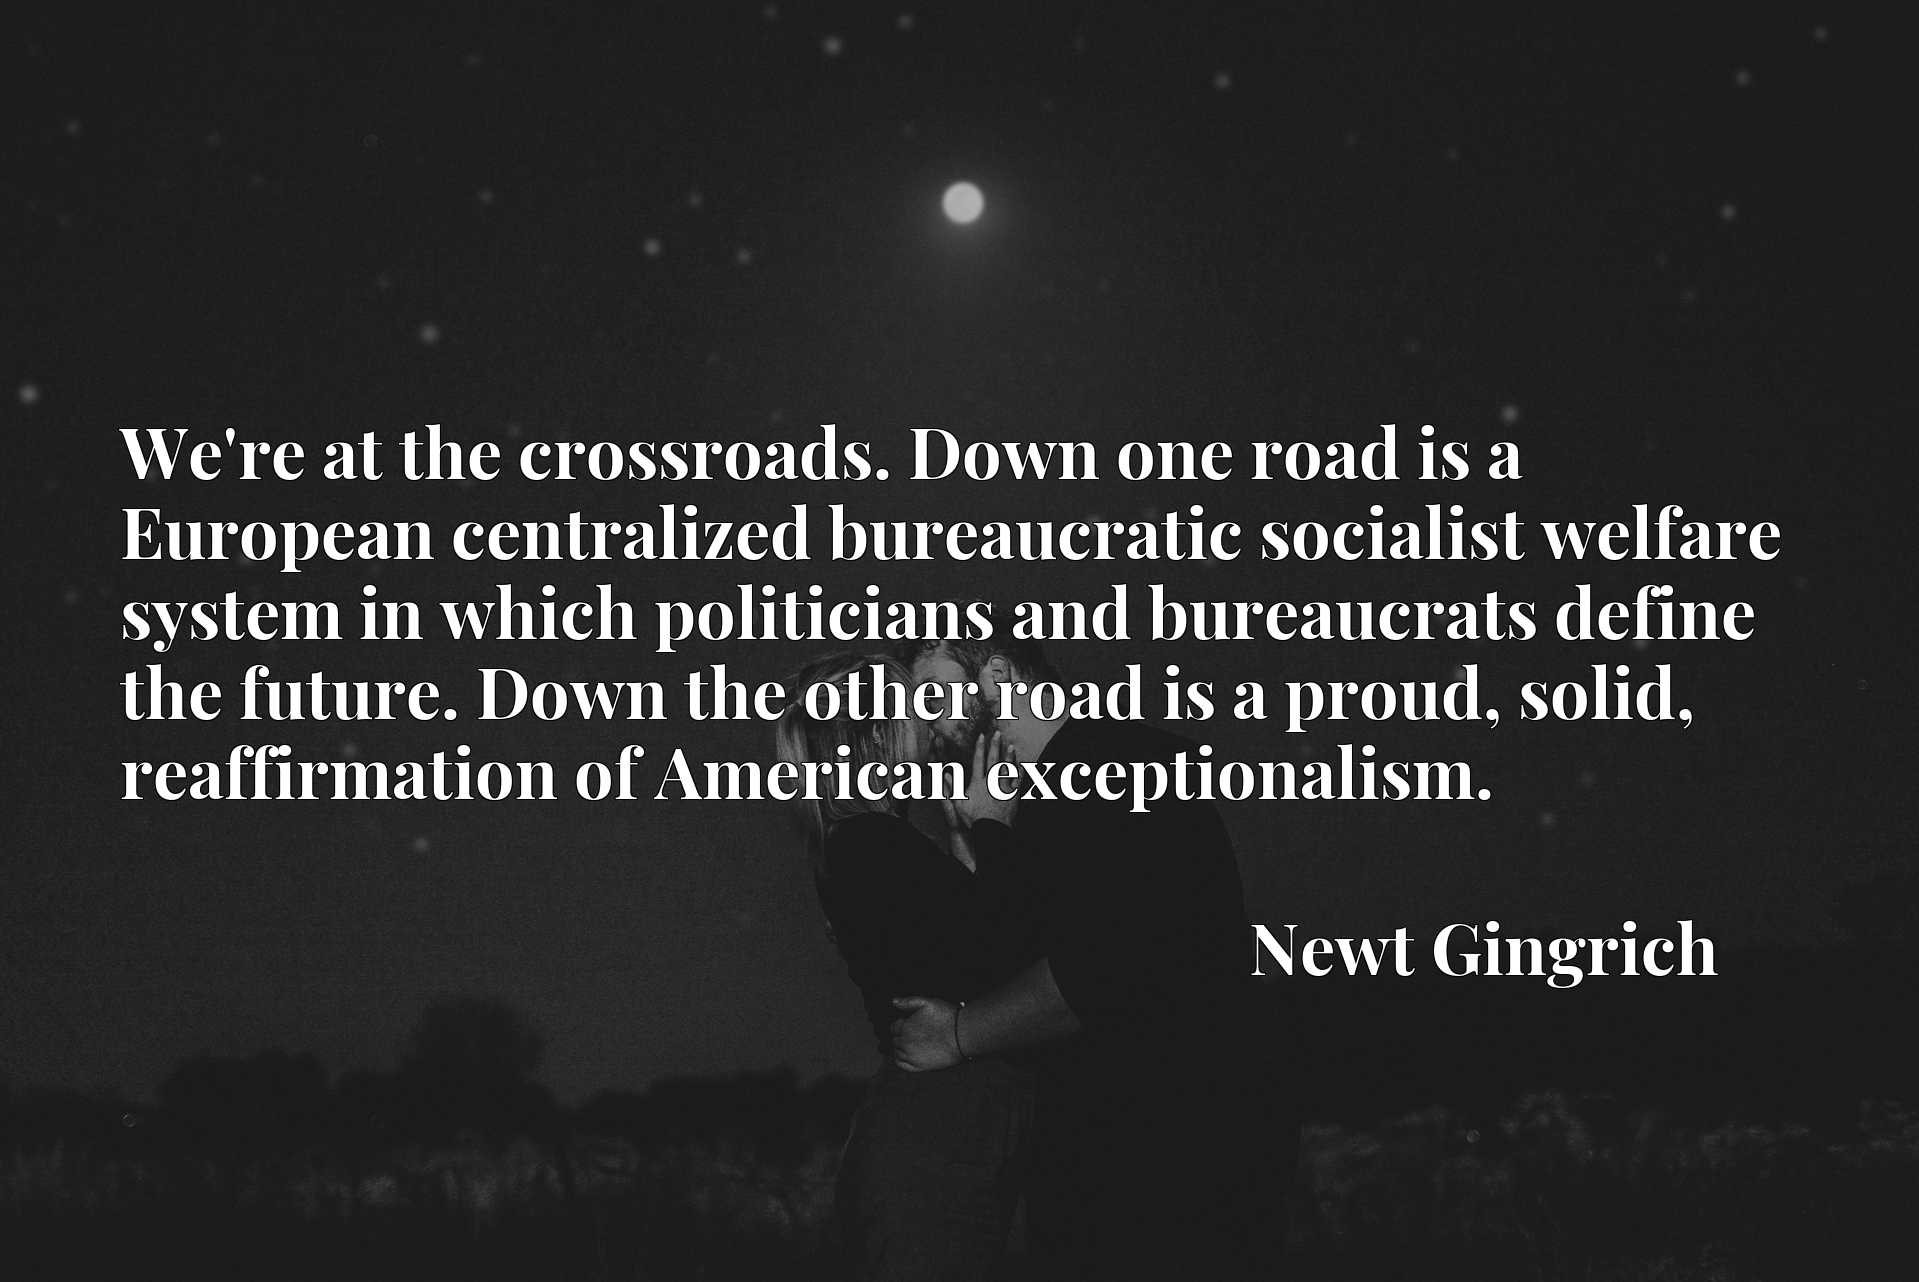 We're at the crossroads. Down one road is a European centralized bureaucratic socialist welfare system in which politicians and bureaucrats define the future. Down the other road is a proud, solid, reaffirmation of American exceptionalism.